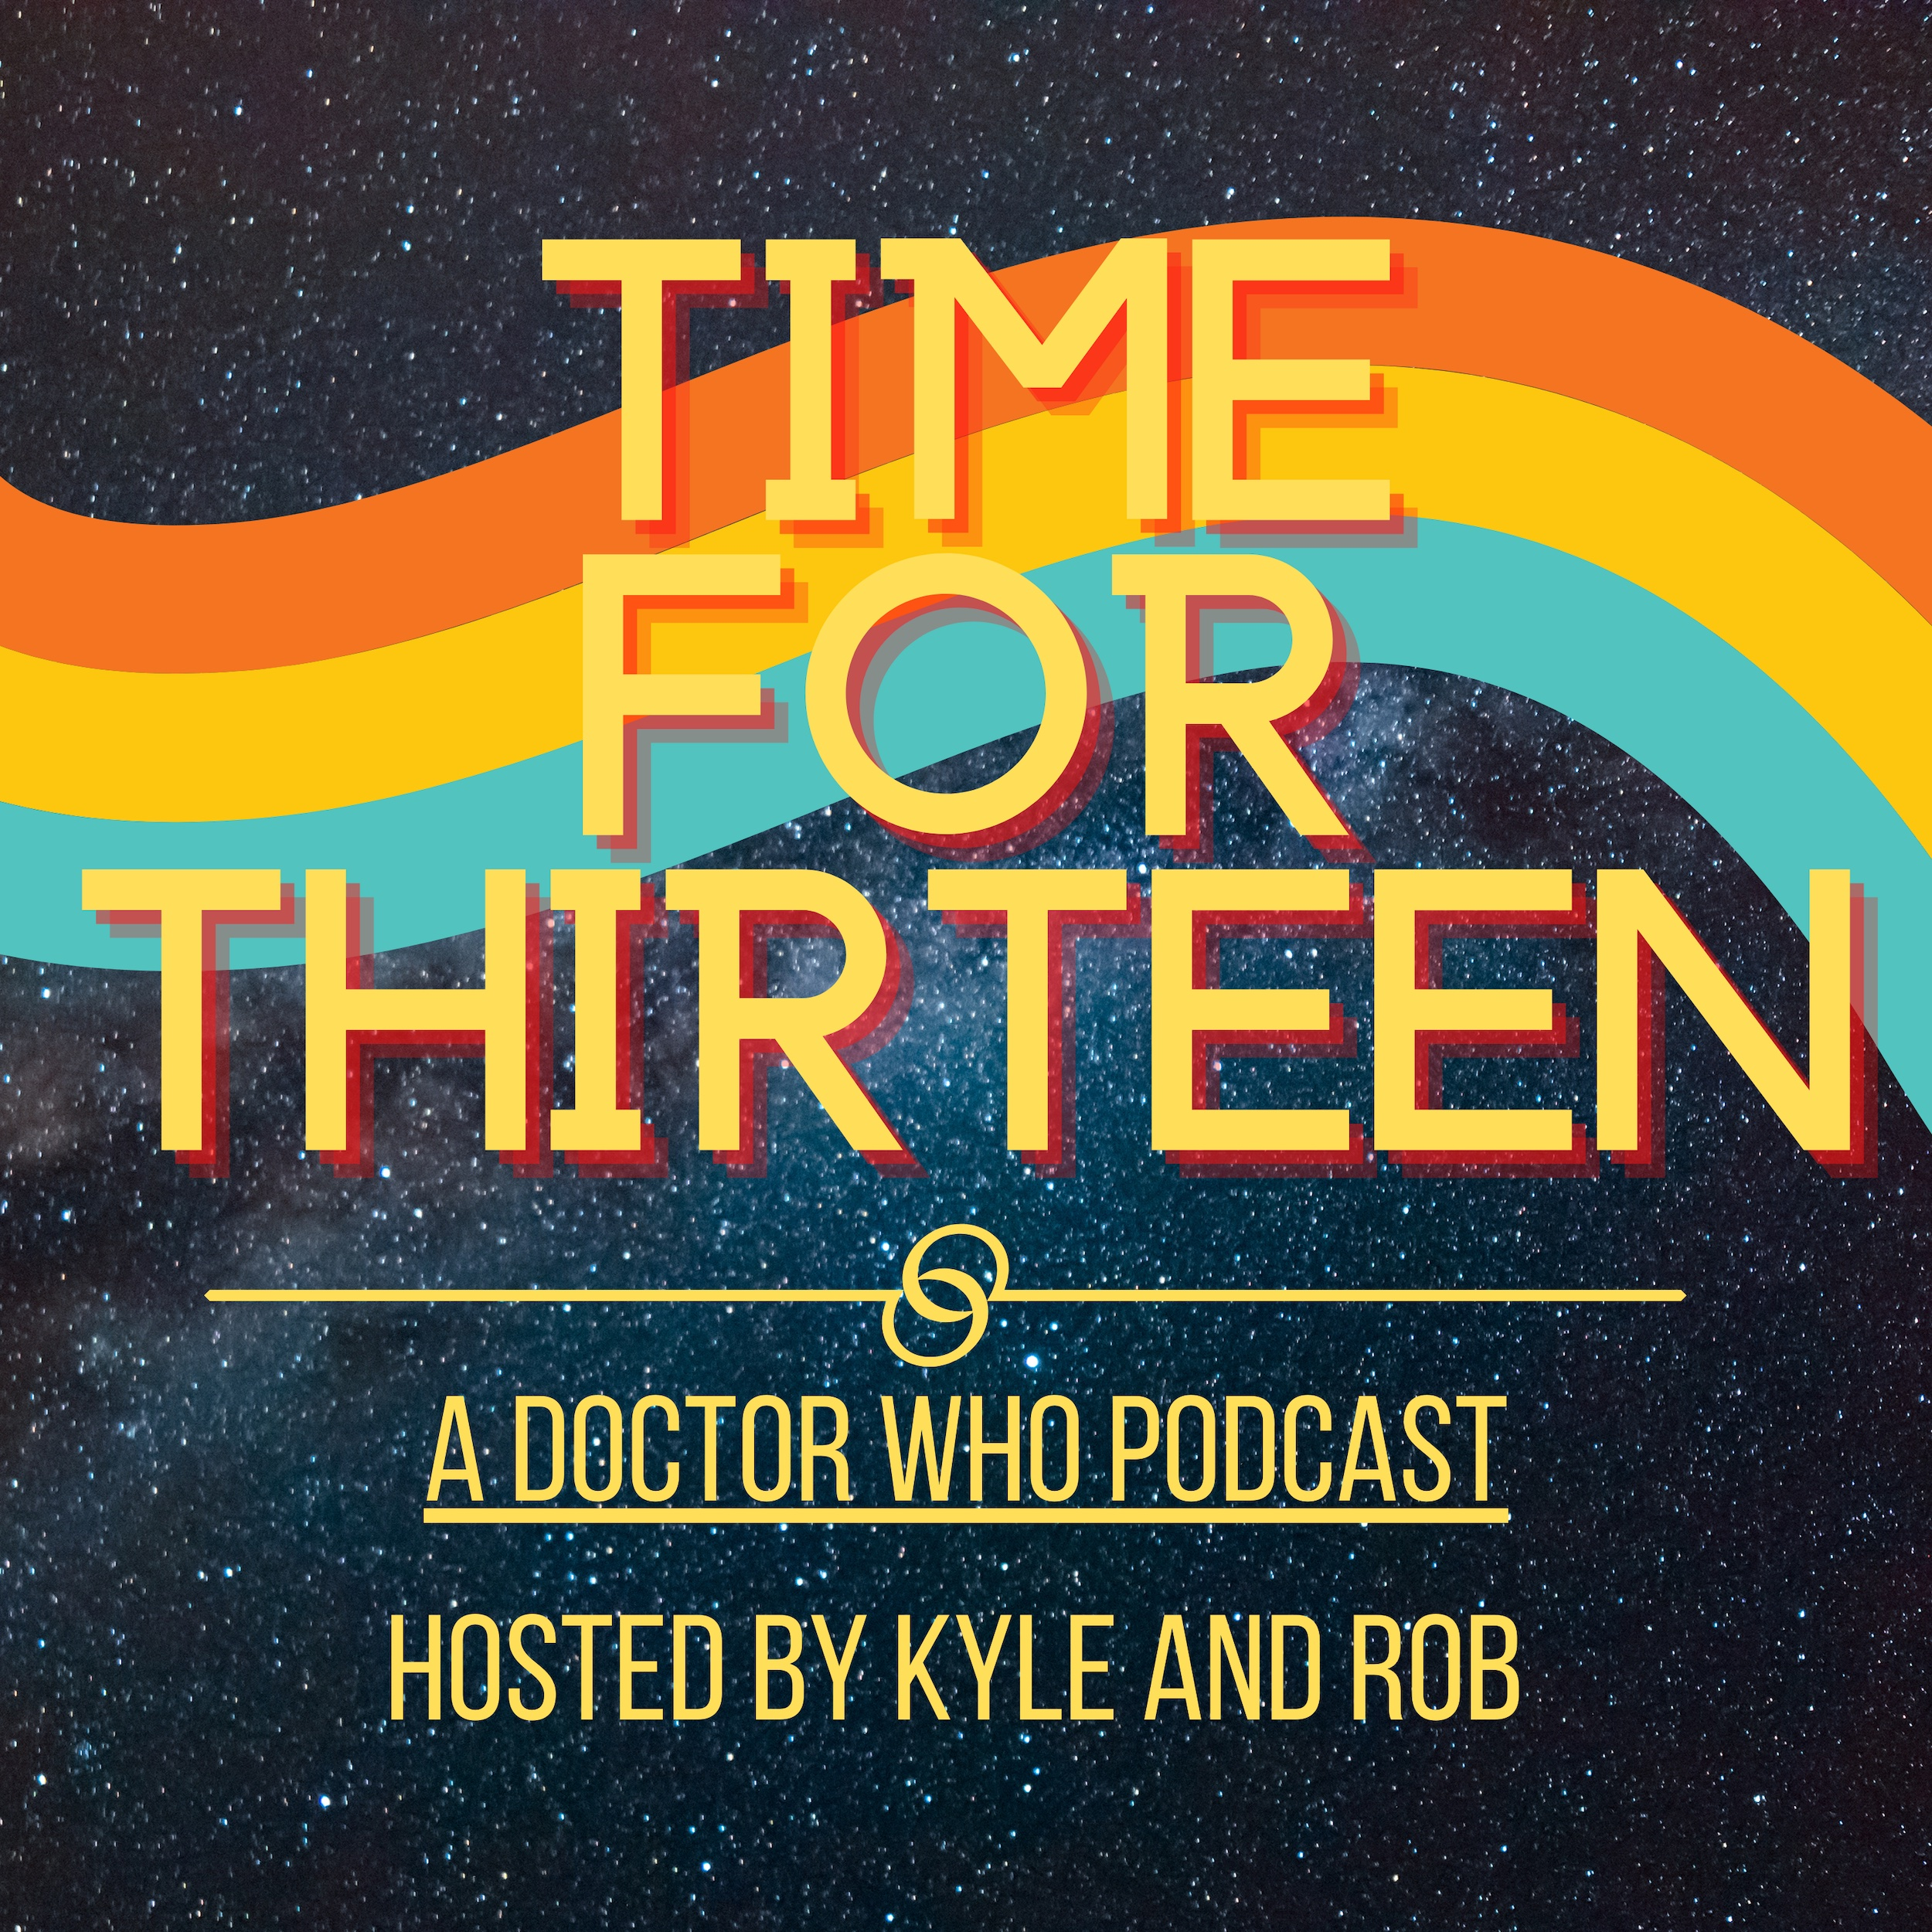 Time for Thirteen Doctor Who Podcast Logo